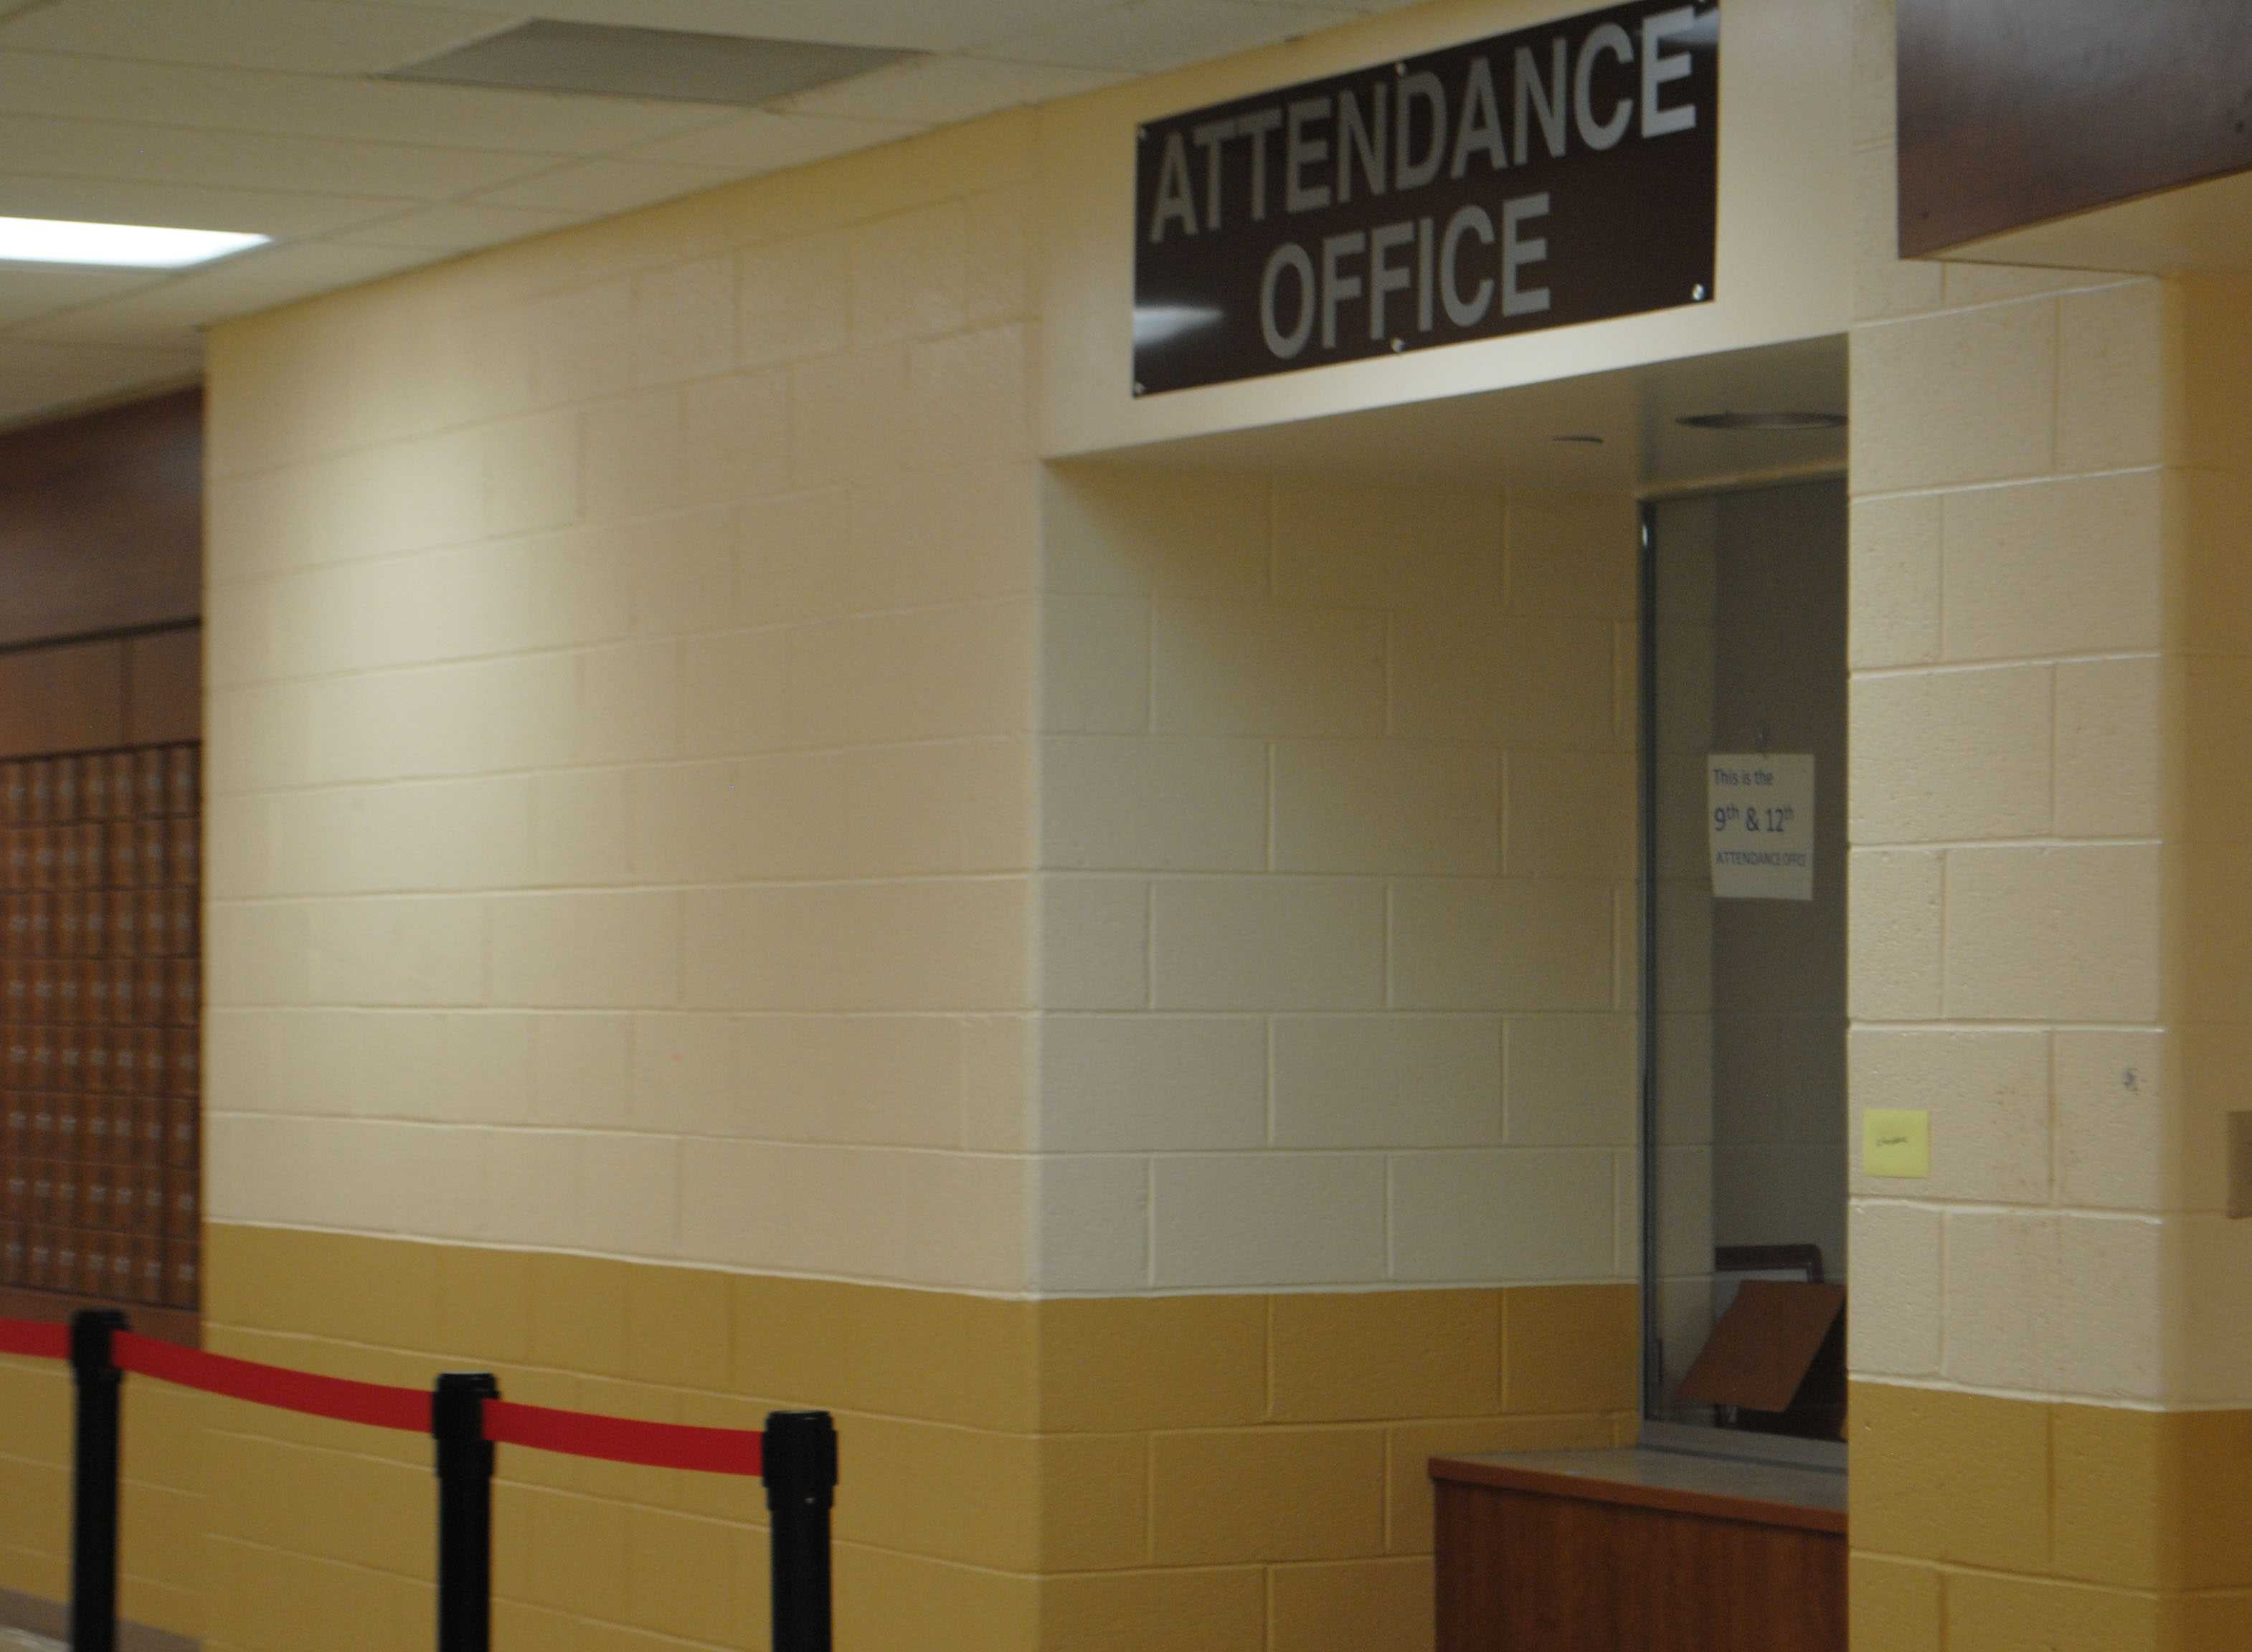 Students who are late are required to sign in at the attendance office.